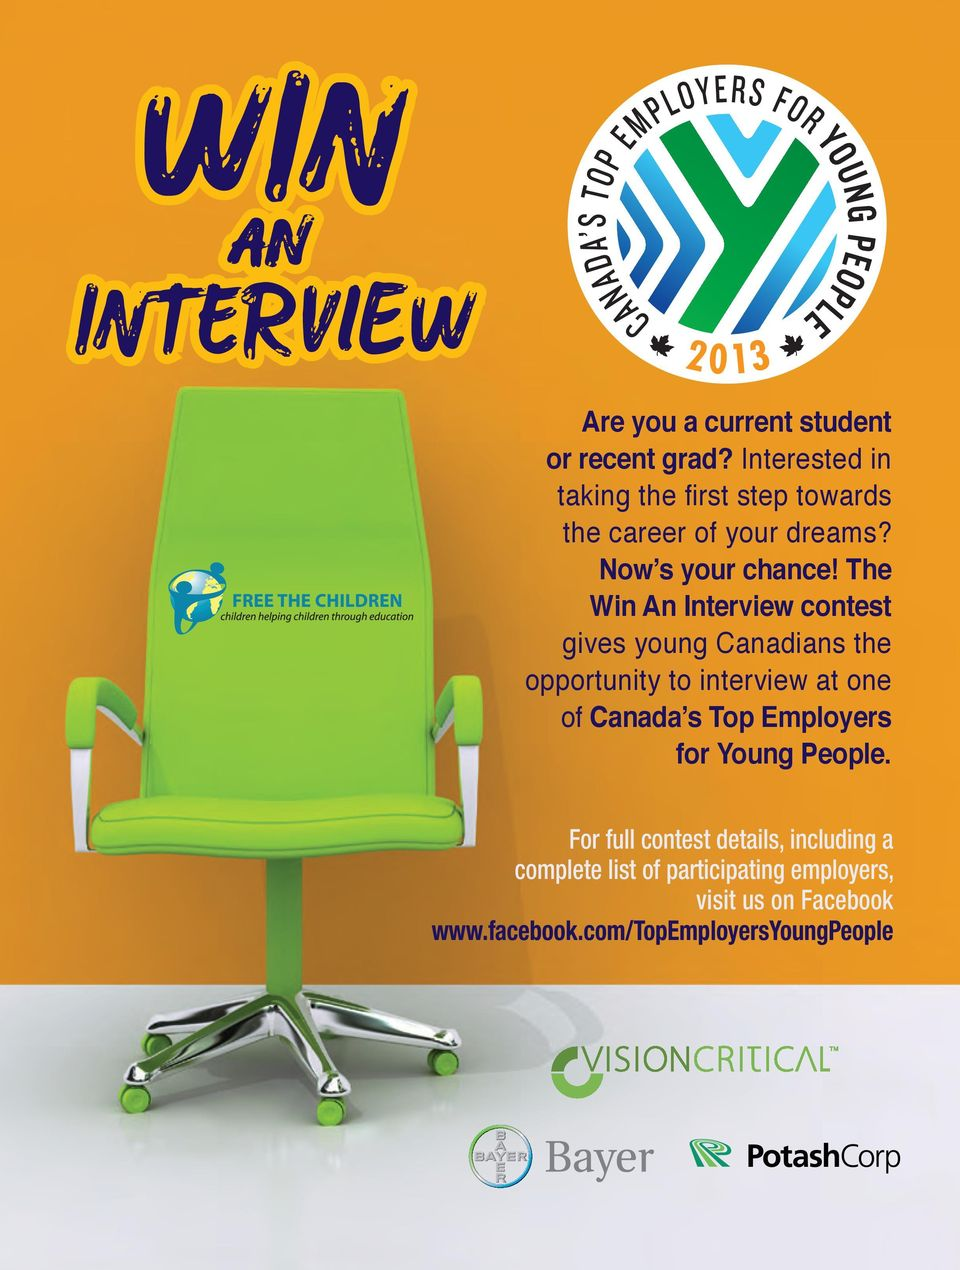 The Win An Interview contest gives young Canadians the opportunity to interview at one of Canada s Top